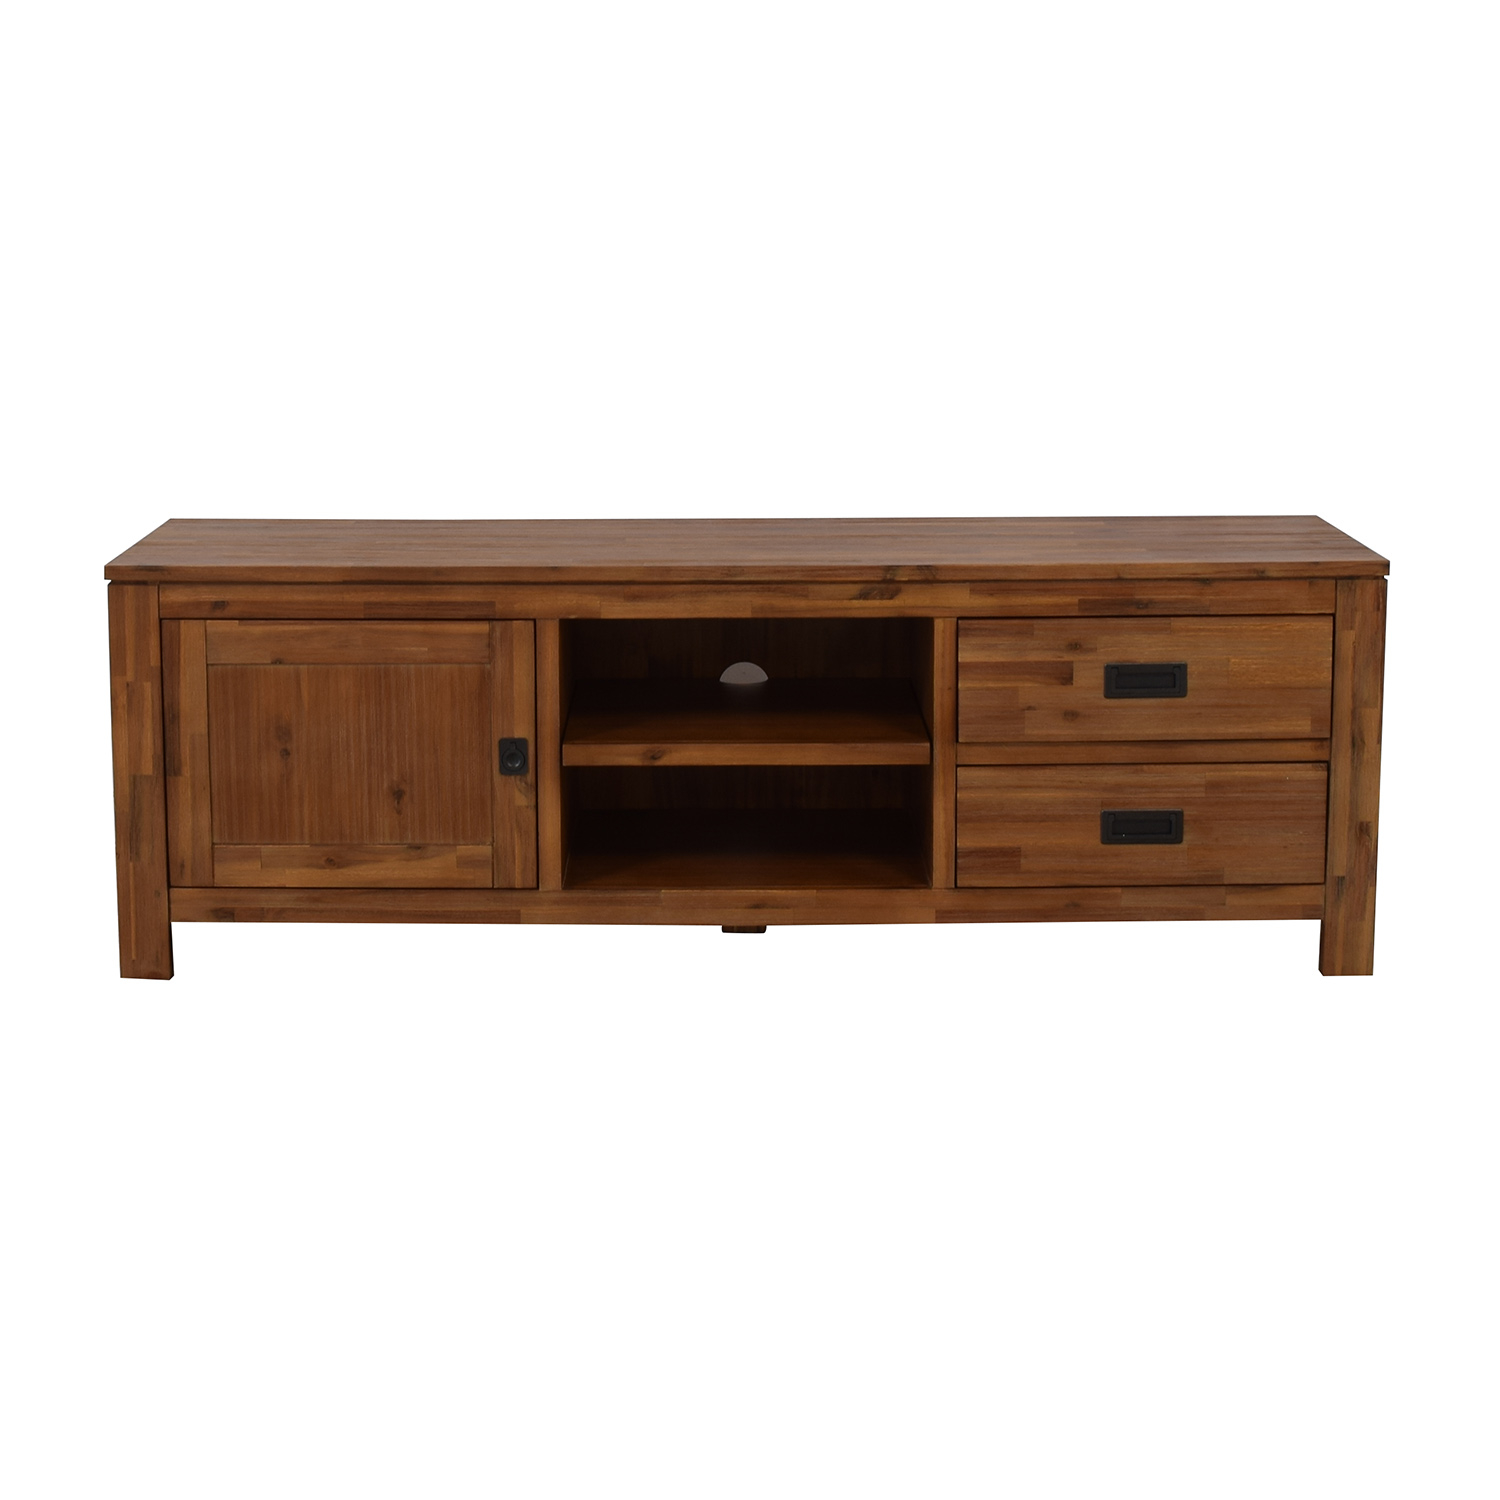 shop Macy's Cresent Fine Furniture Wooden TV Stand Macy's Media Units